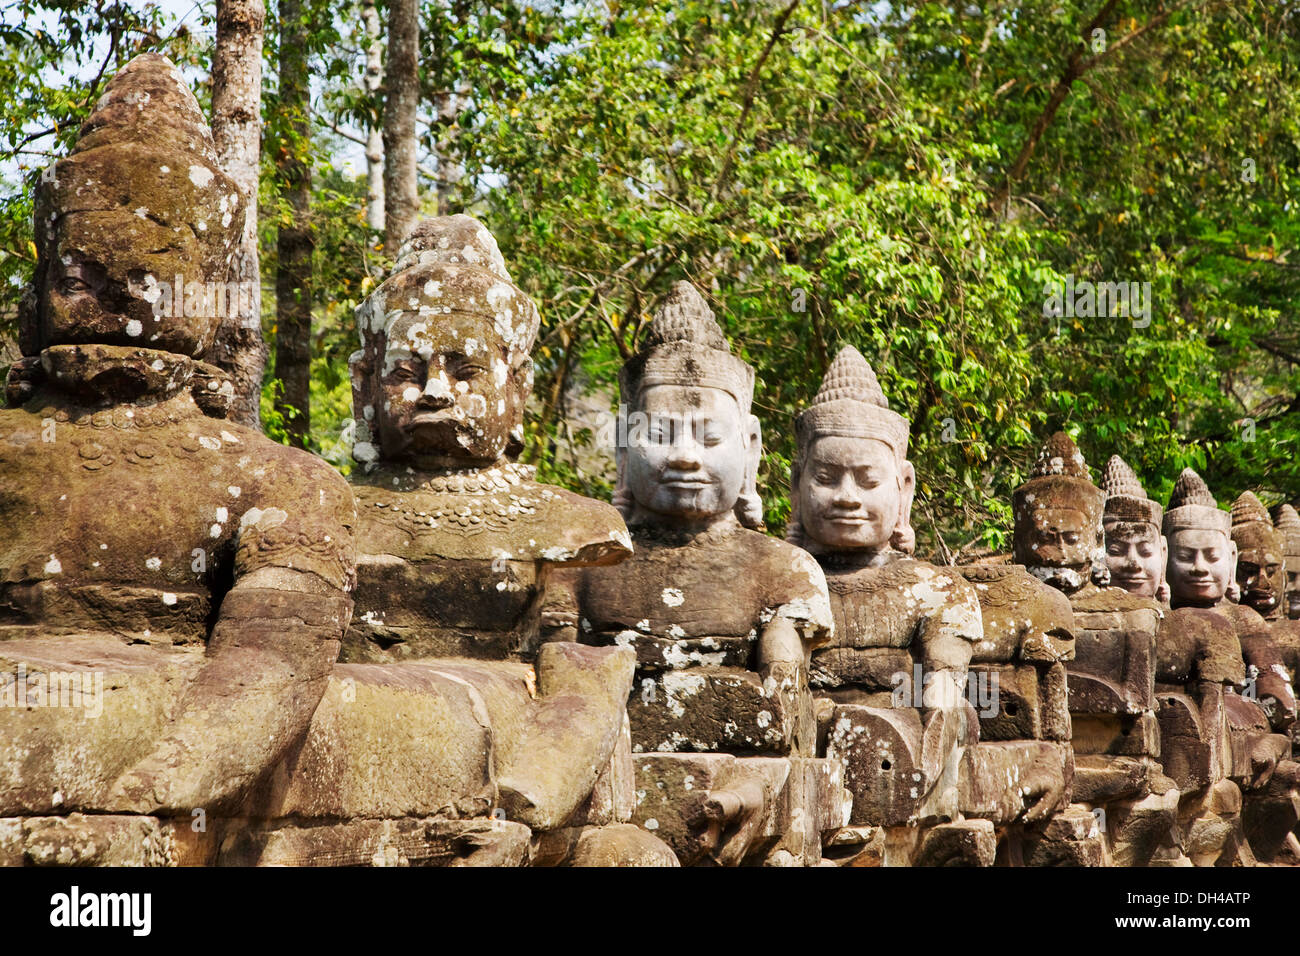 Statues in Angkor archeological site, Siem Reap, Cambodia - Stock Image